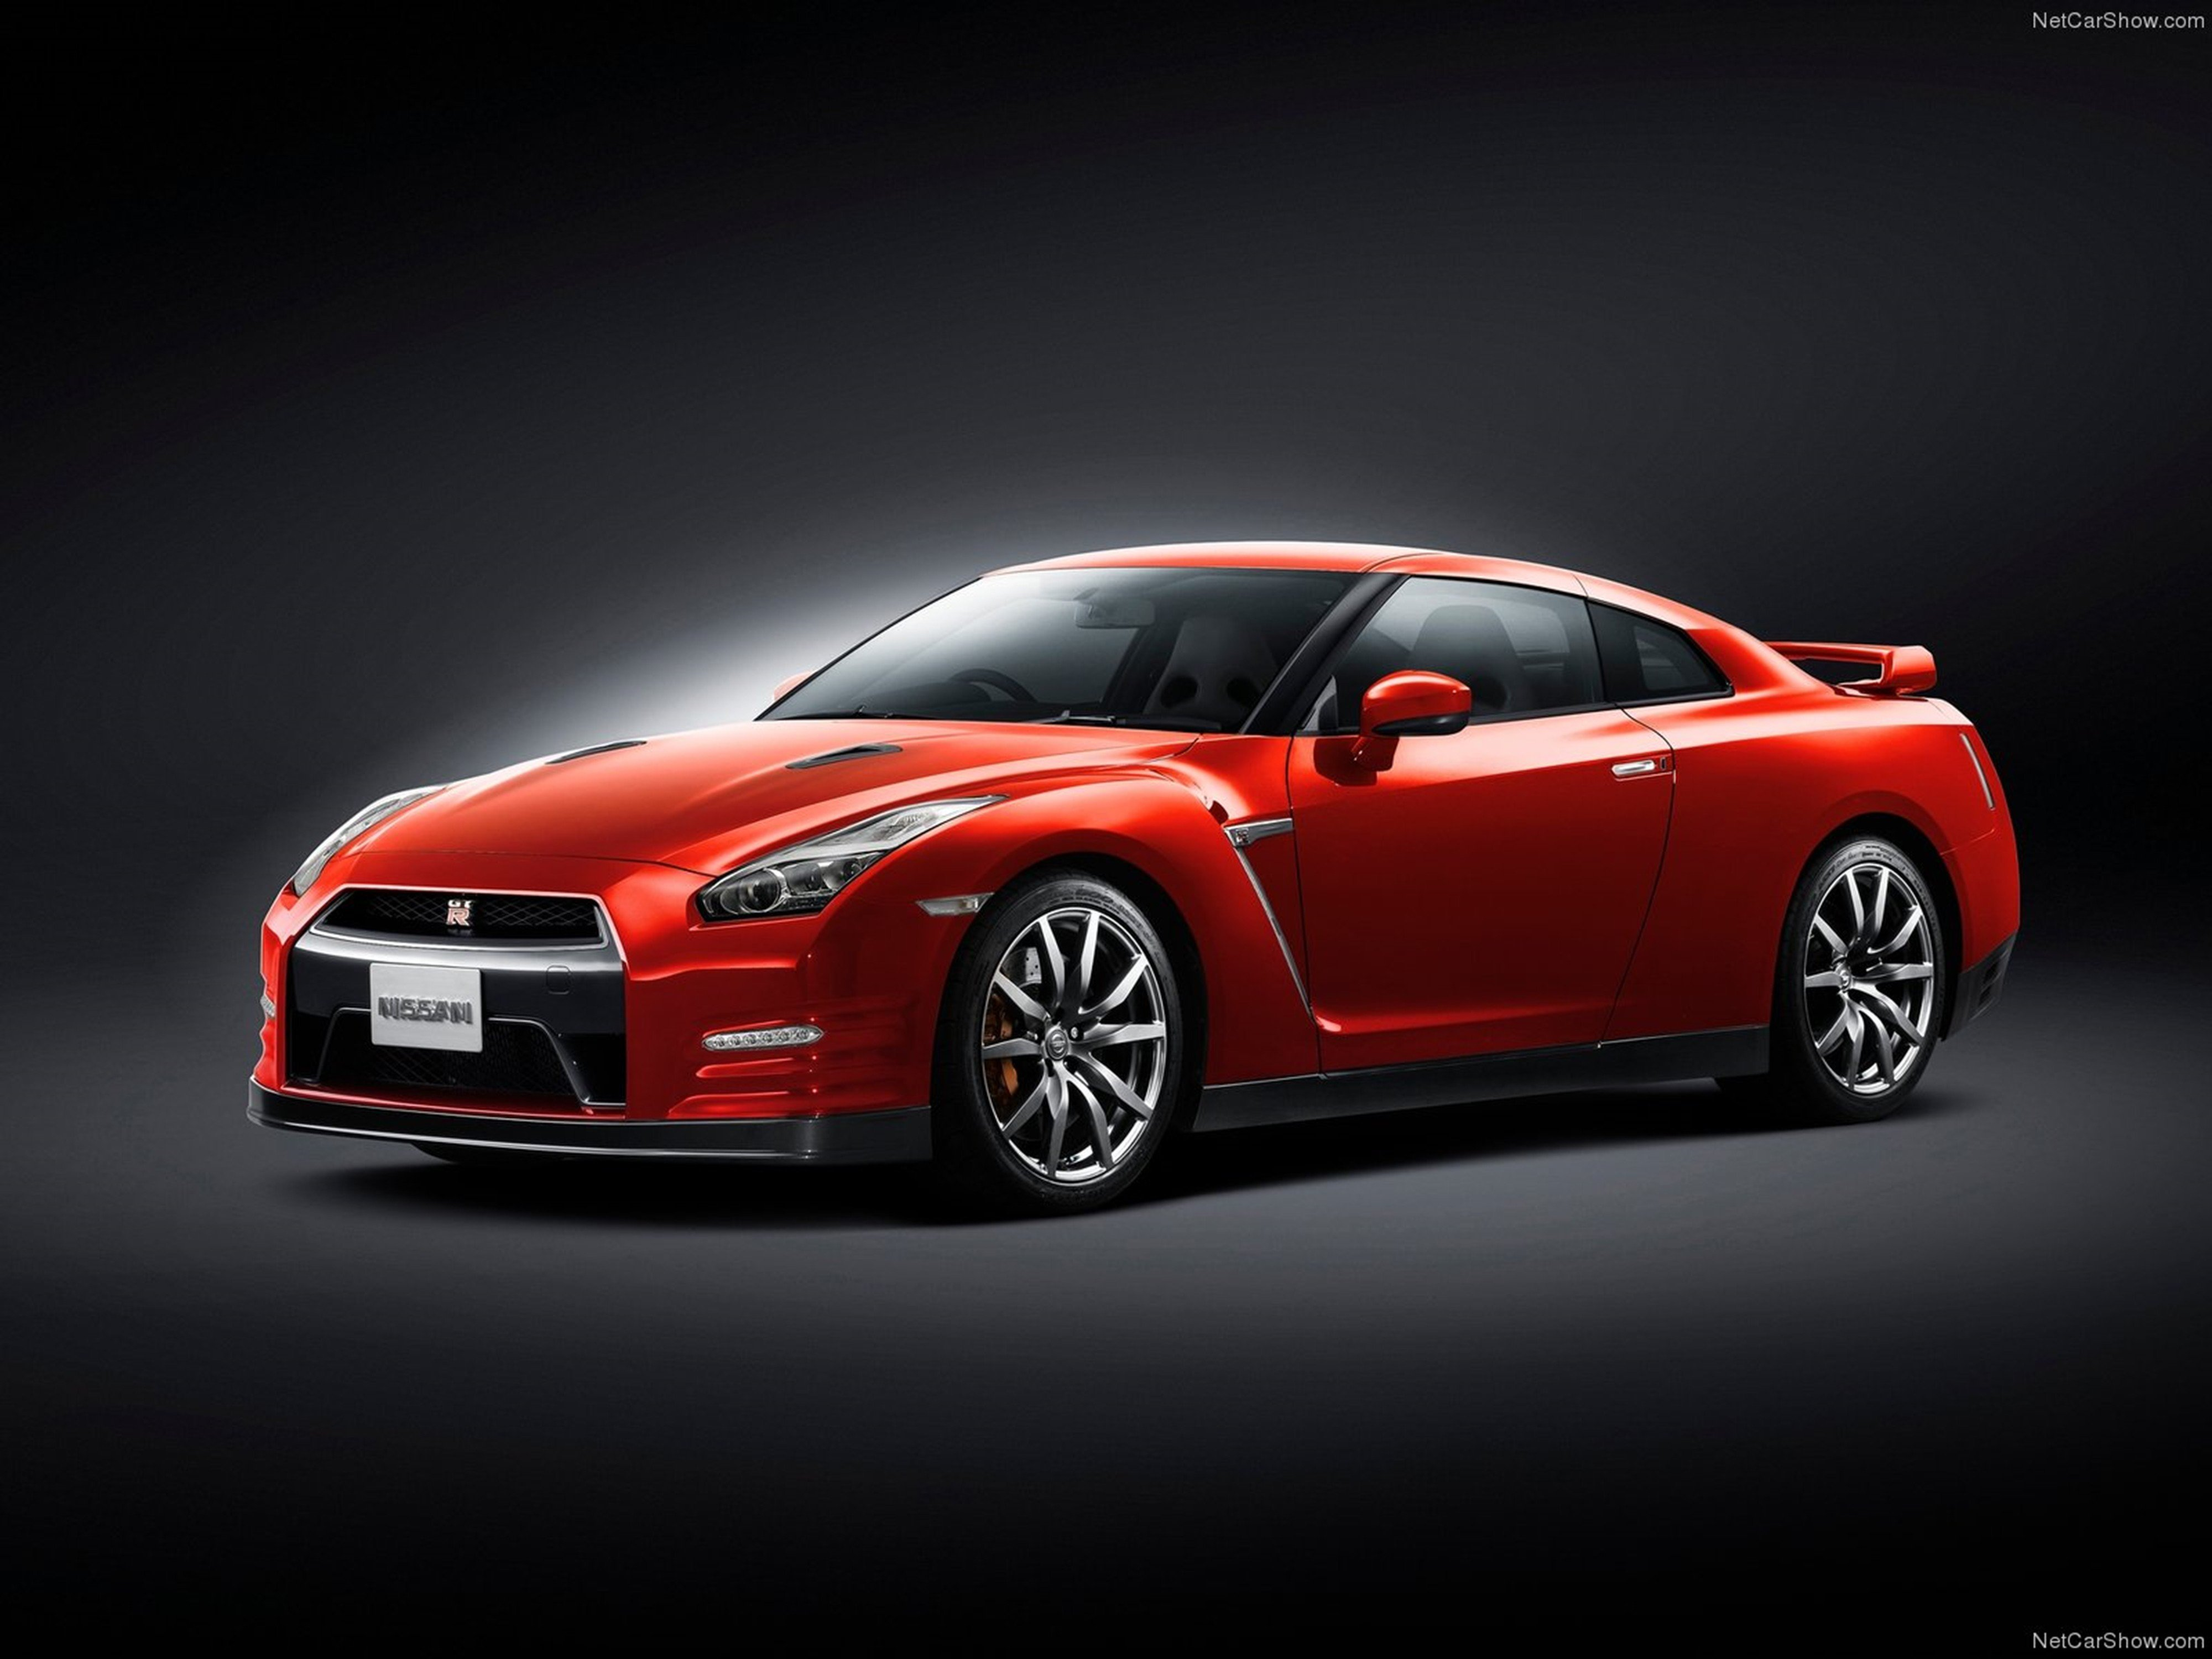 cars nissan red gtr - photo #16